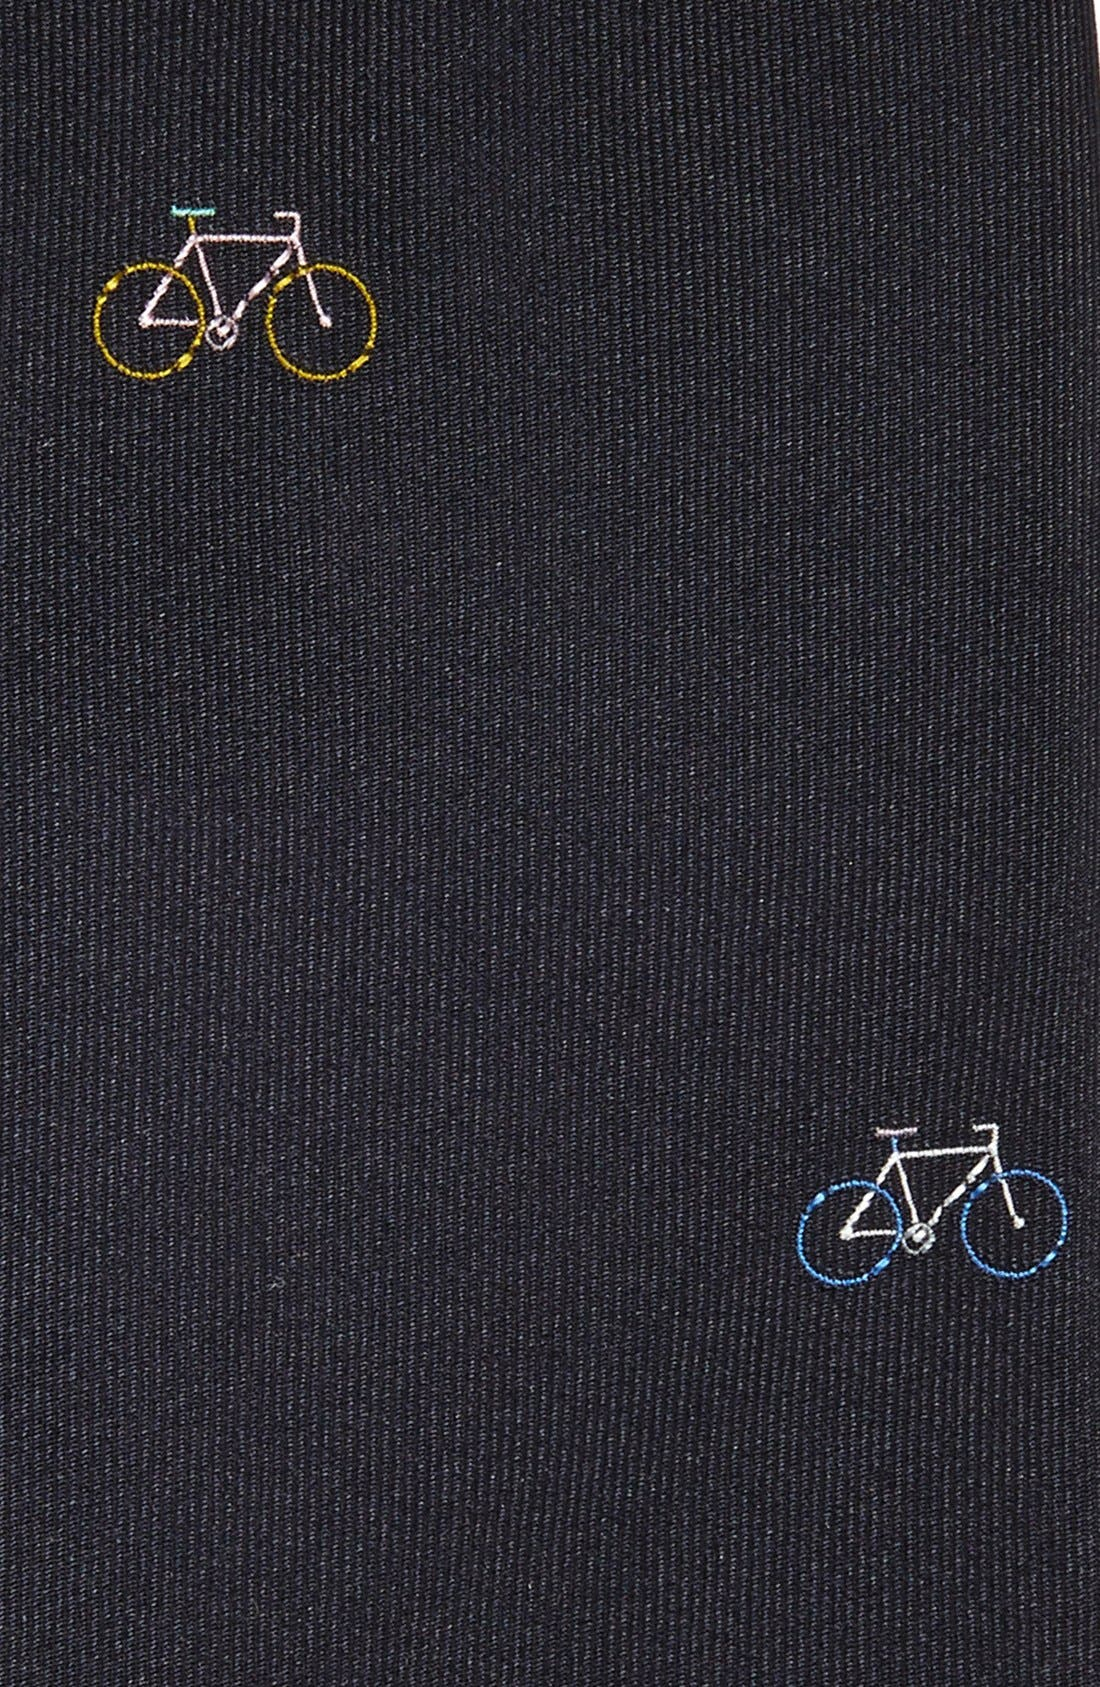 'Bicycle' Silk Tie,                             Alternate thumbnail 2, color,                             414